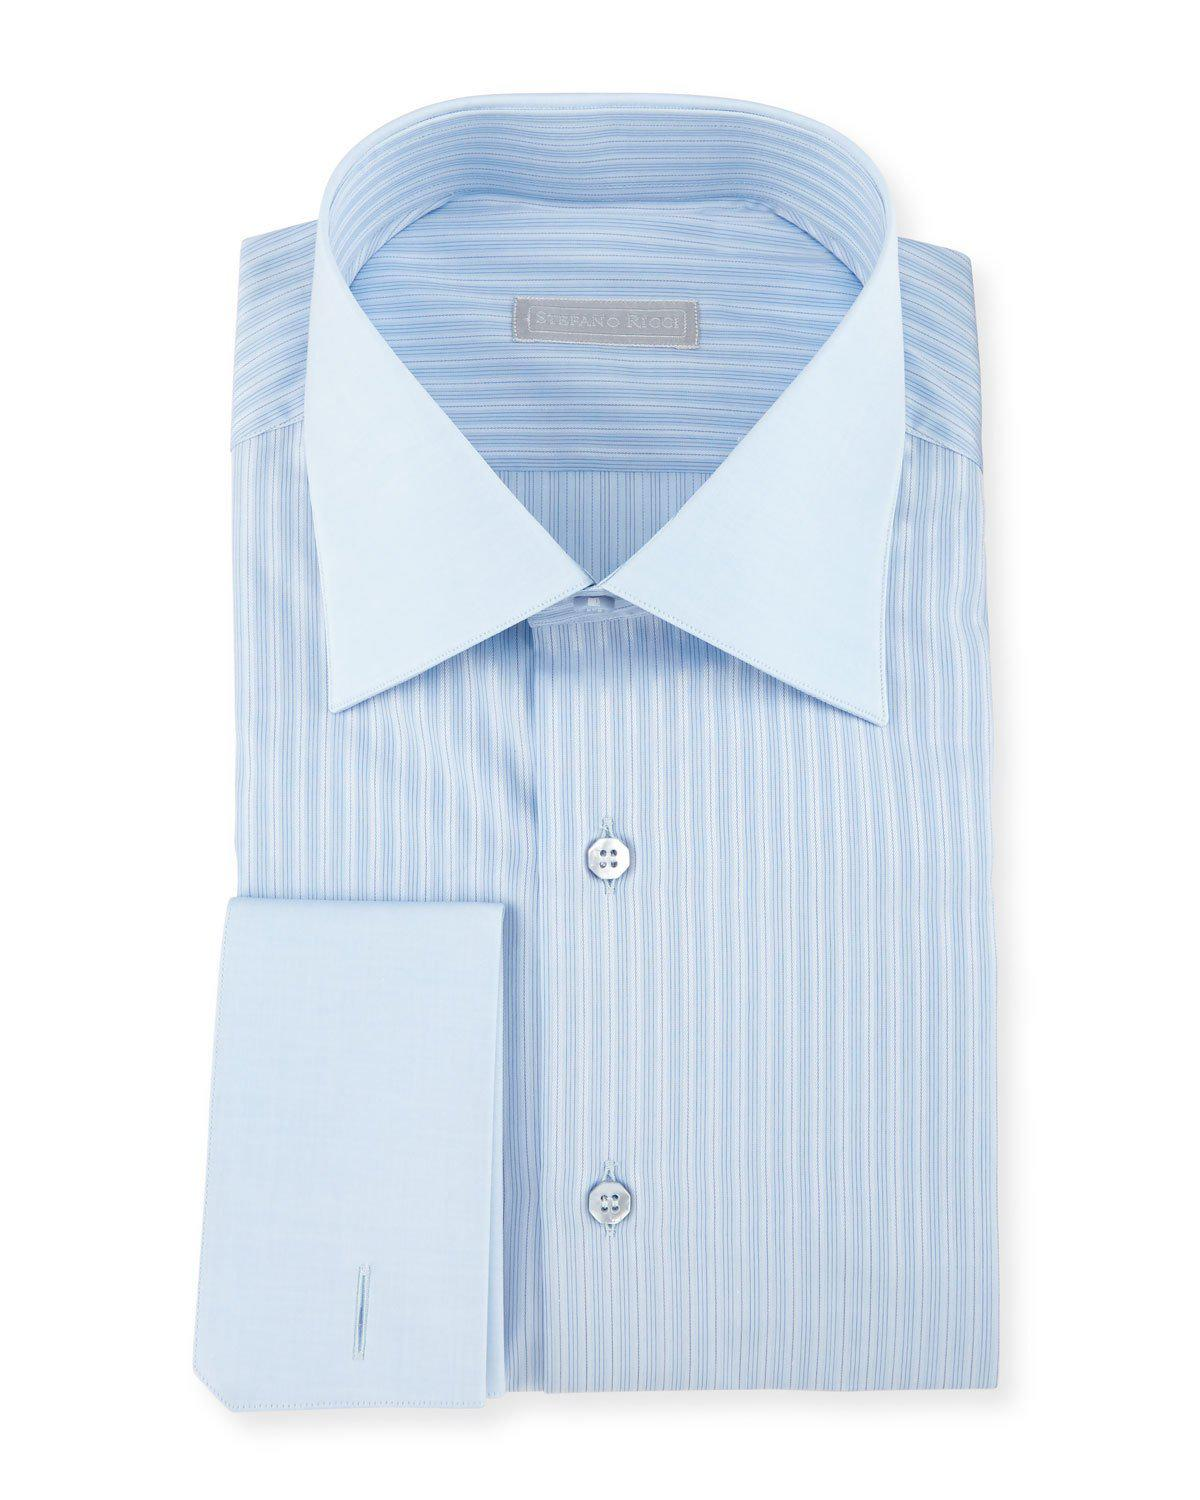 Lyst stefano ricci contrast collar french cuff striped for Mens dress shirts with contrasting collars and cuffs